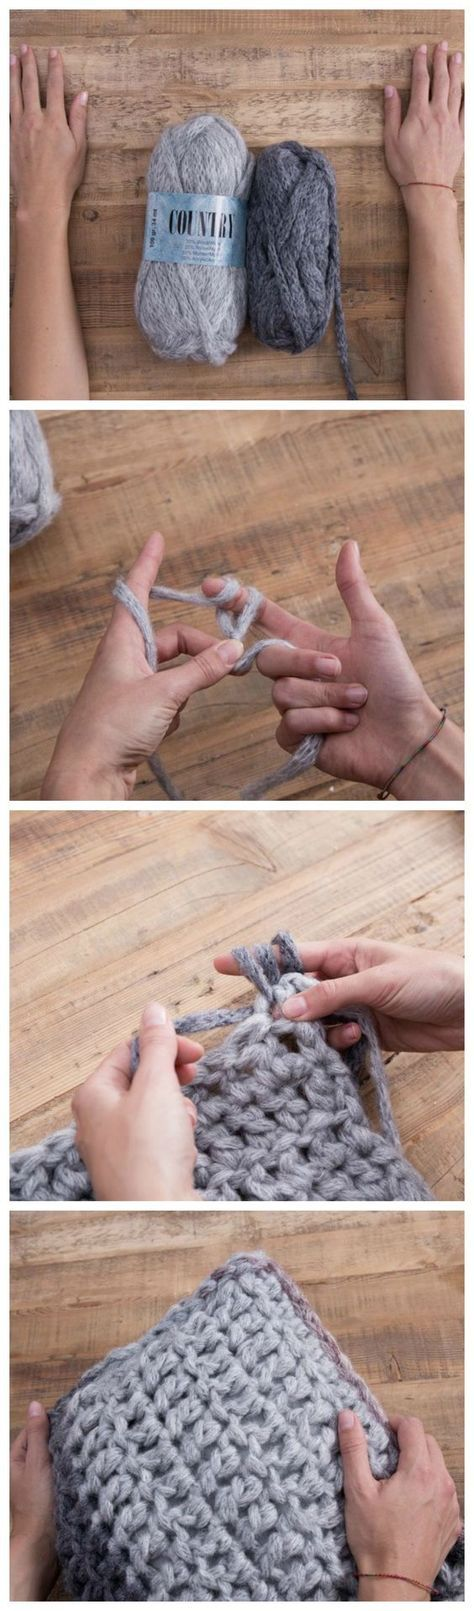 11 best Stricken images on Pinterest | Knit crochet, Knit patterns ...